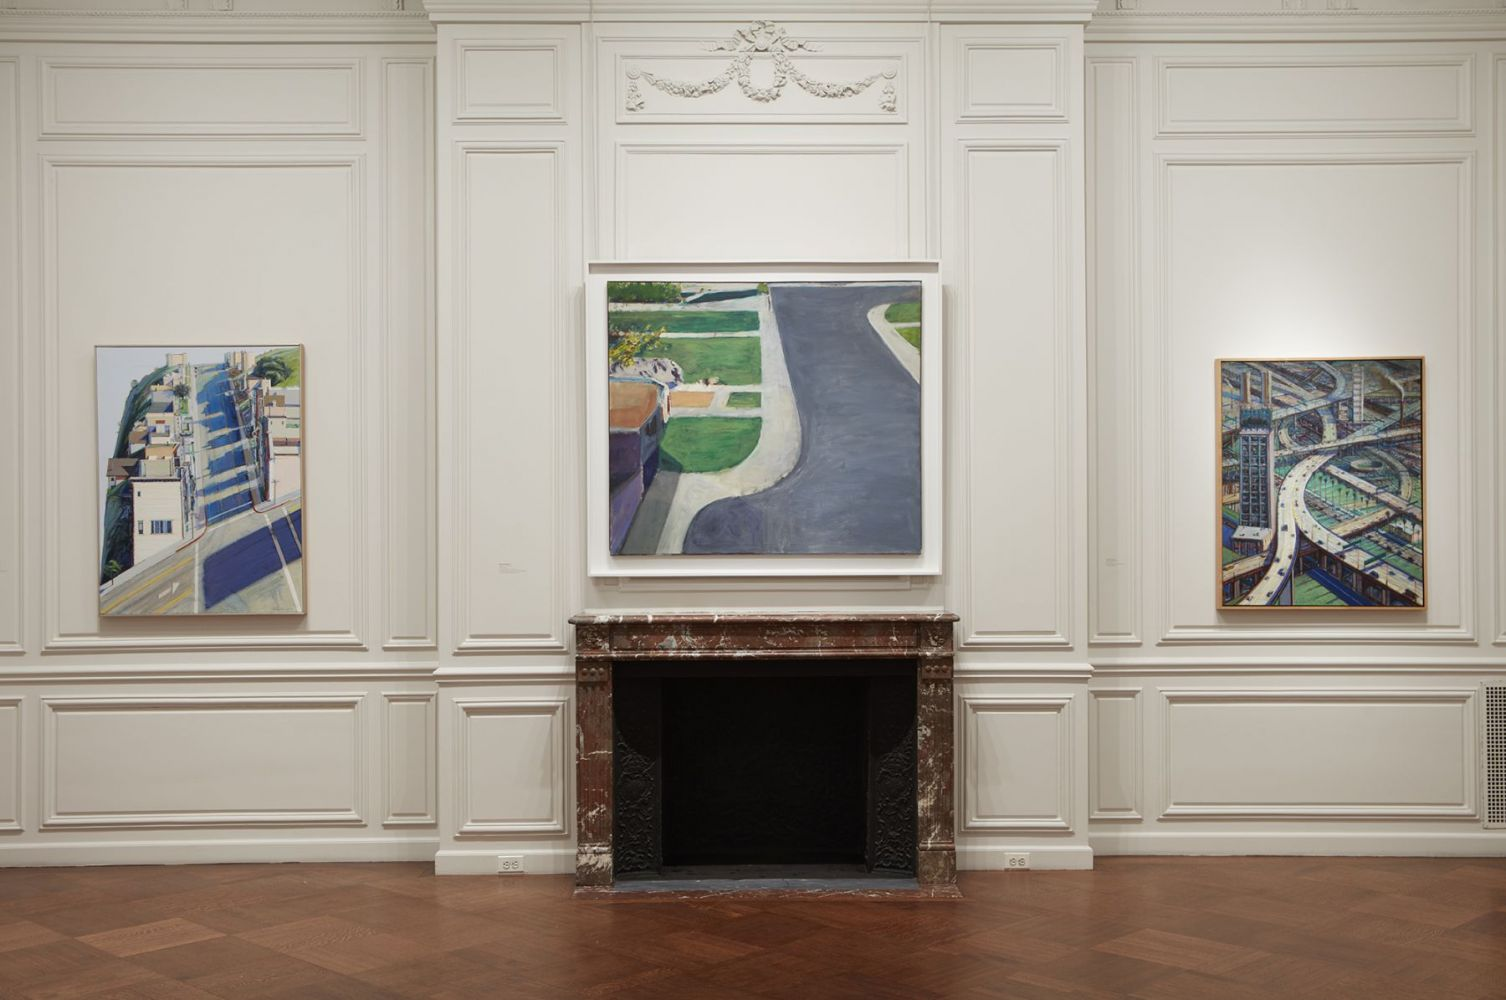 Installation view of California Landscapes: Richard Diebenkorn | Wayne Thiebaud, ​February 1 - March 16, 2018.